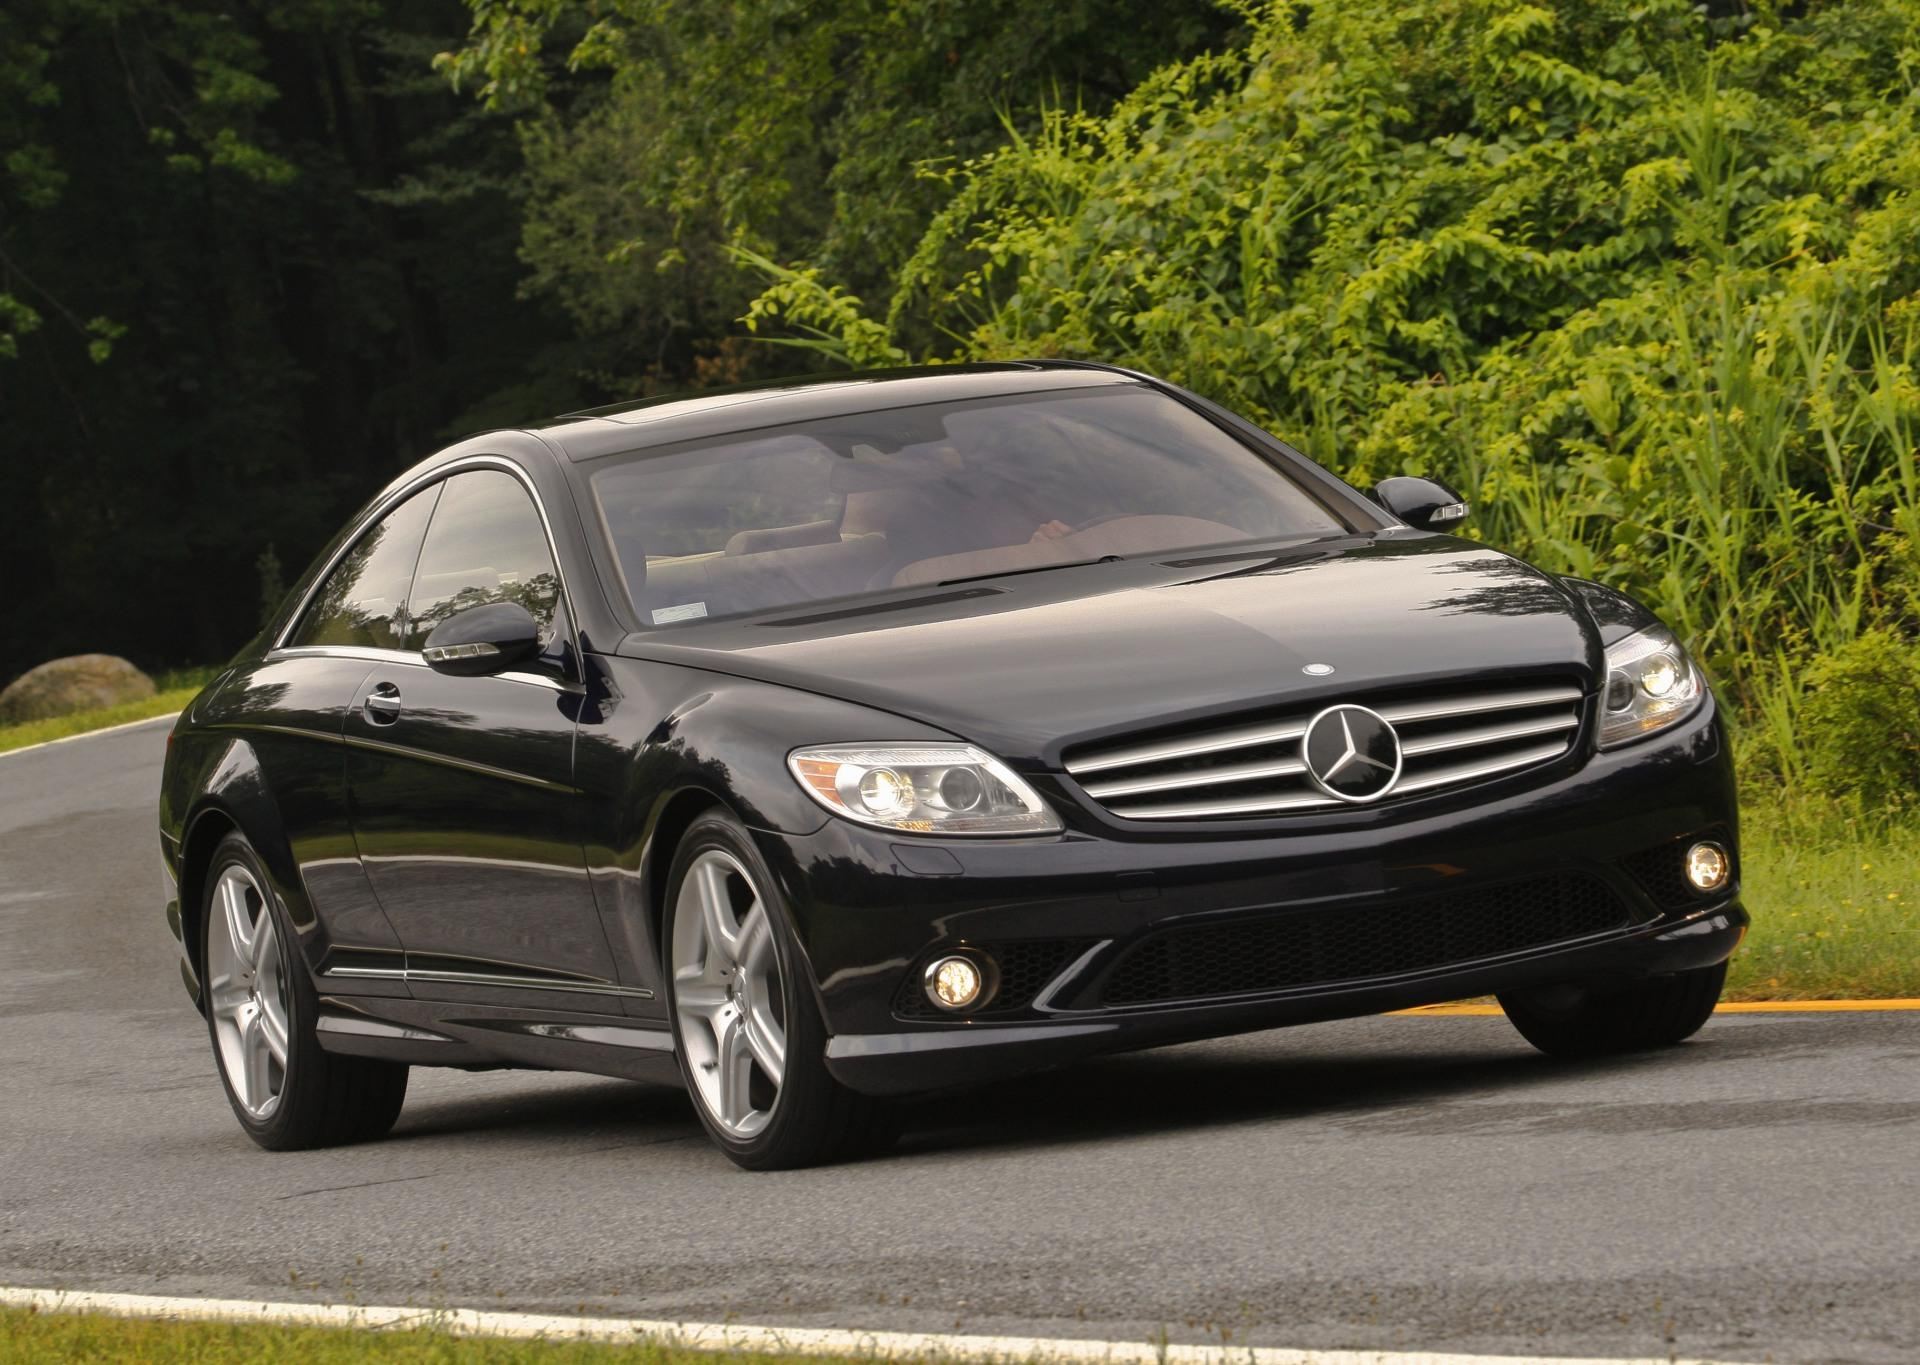 2009 mercedes benz cl class news and information. Black Bedroom Furniture Sets. Home Design Ideas